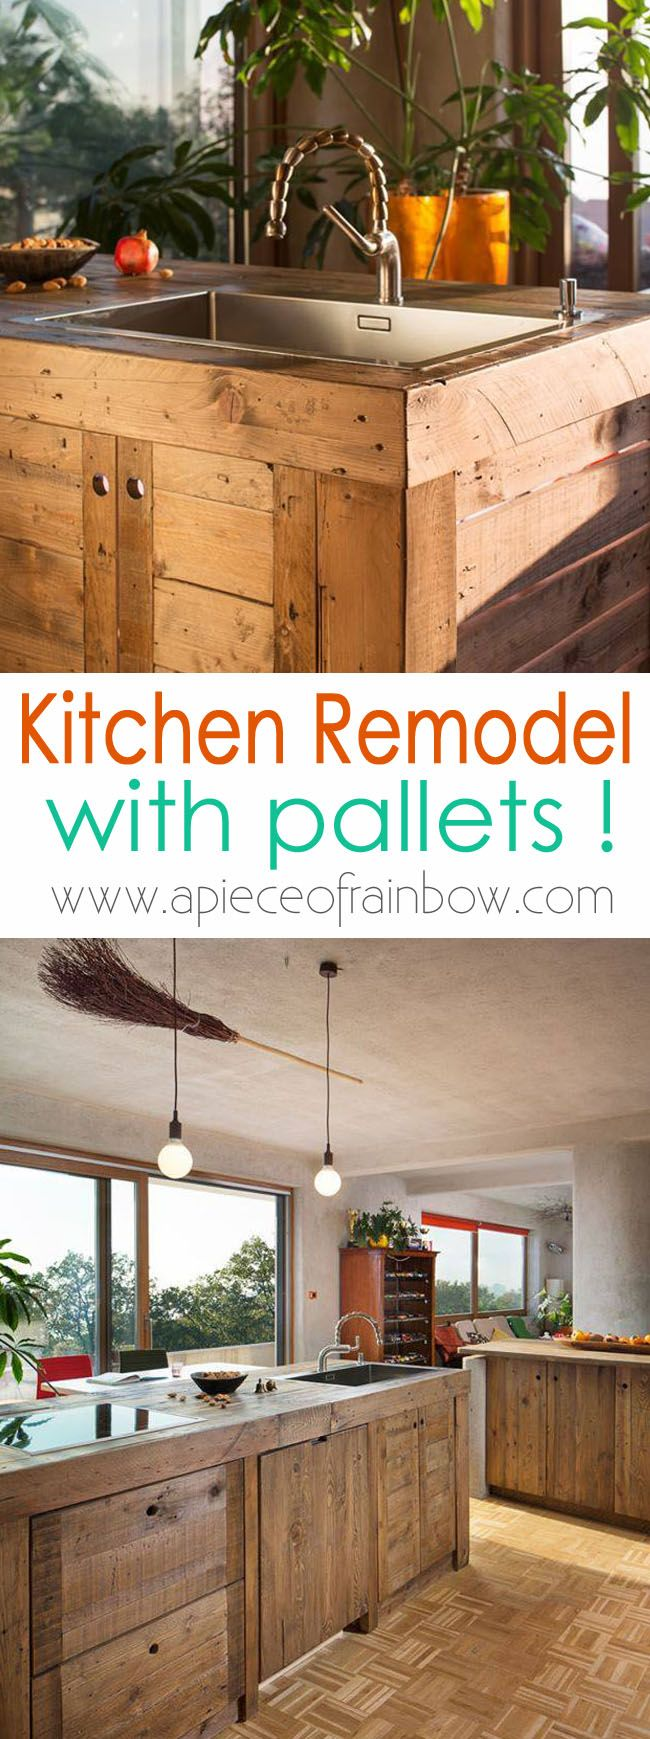 A stunning kitchen remodel created with pallets